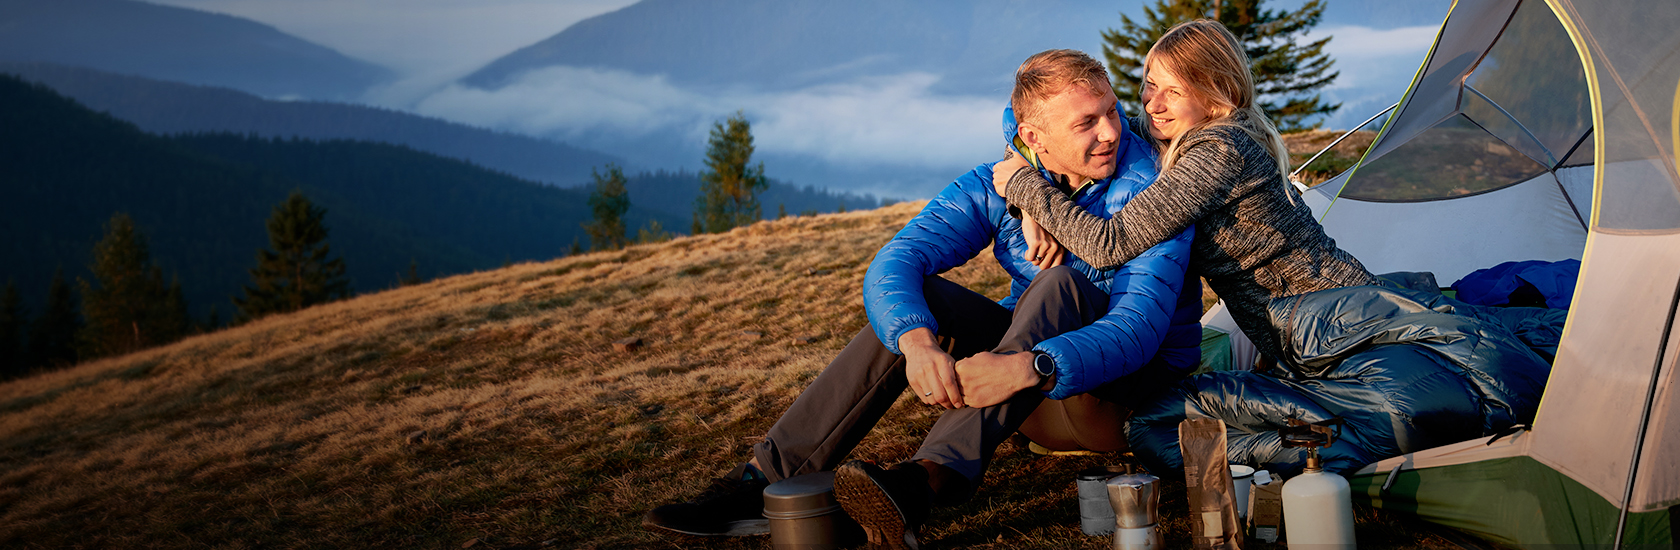 Save up to 40% on essentials to cozy up your campsite